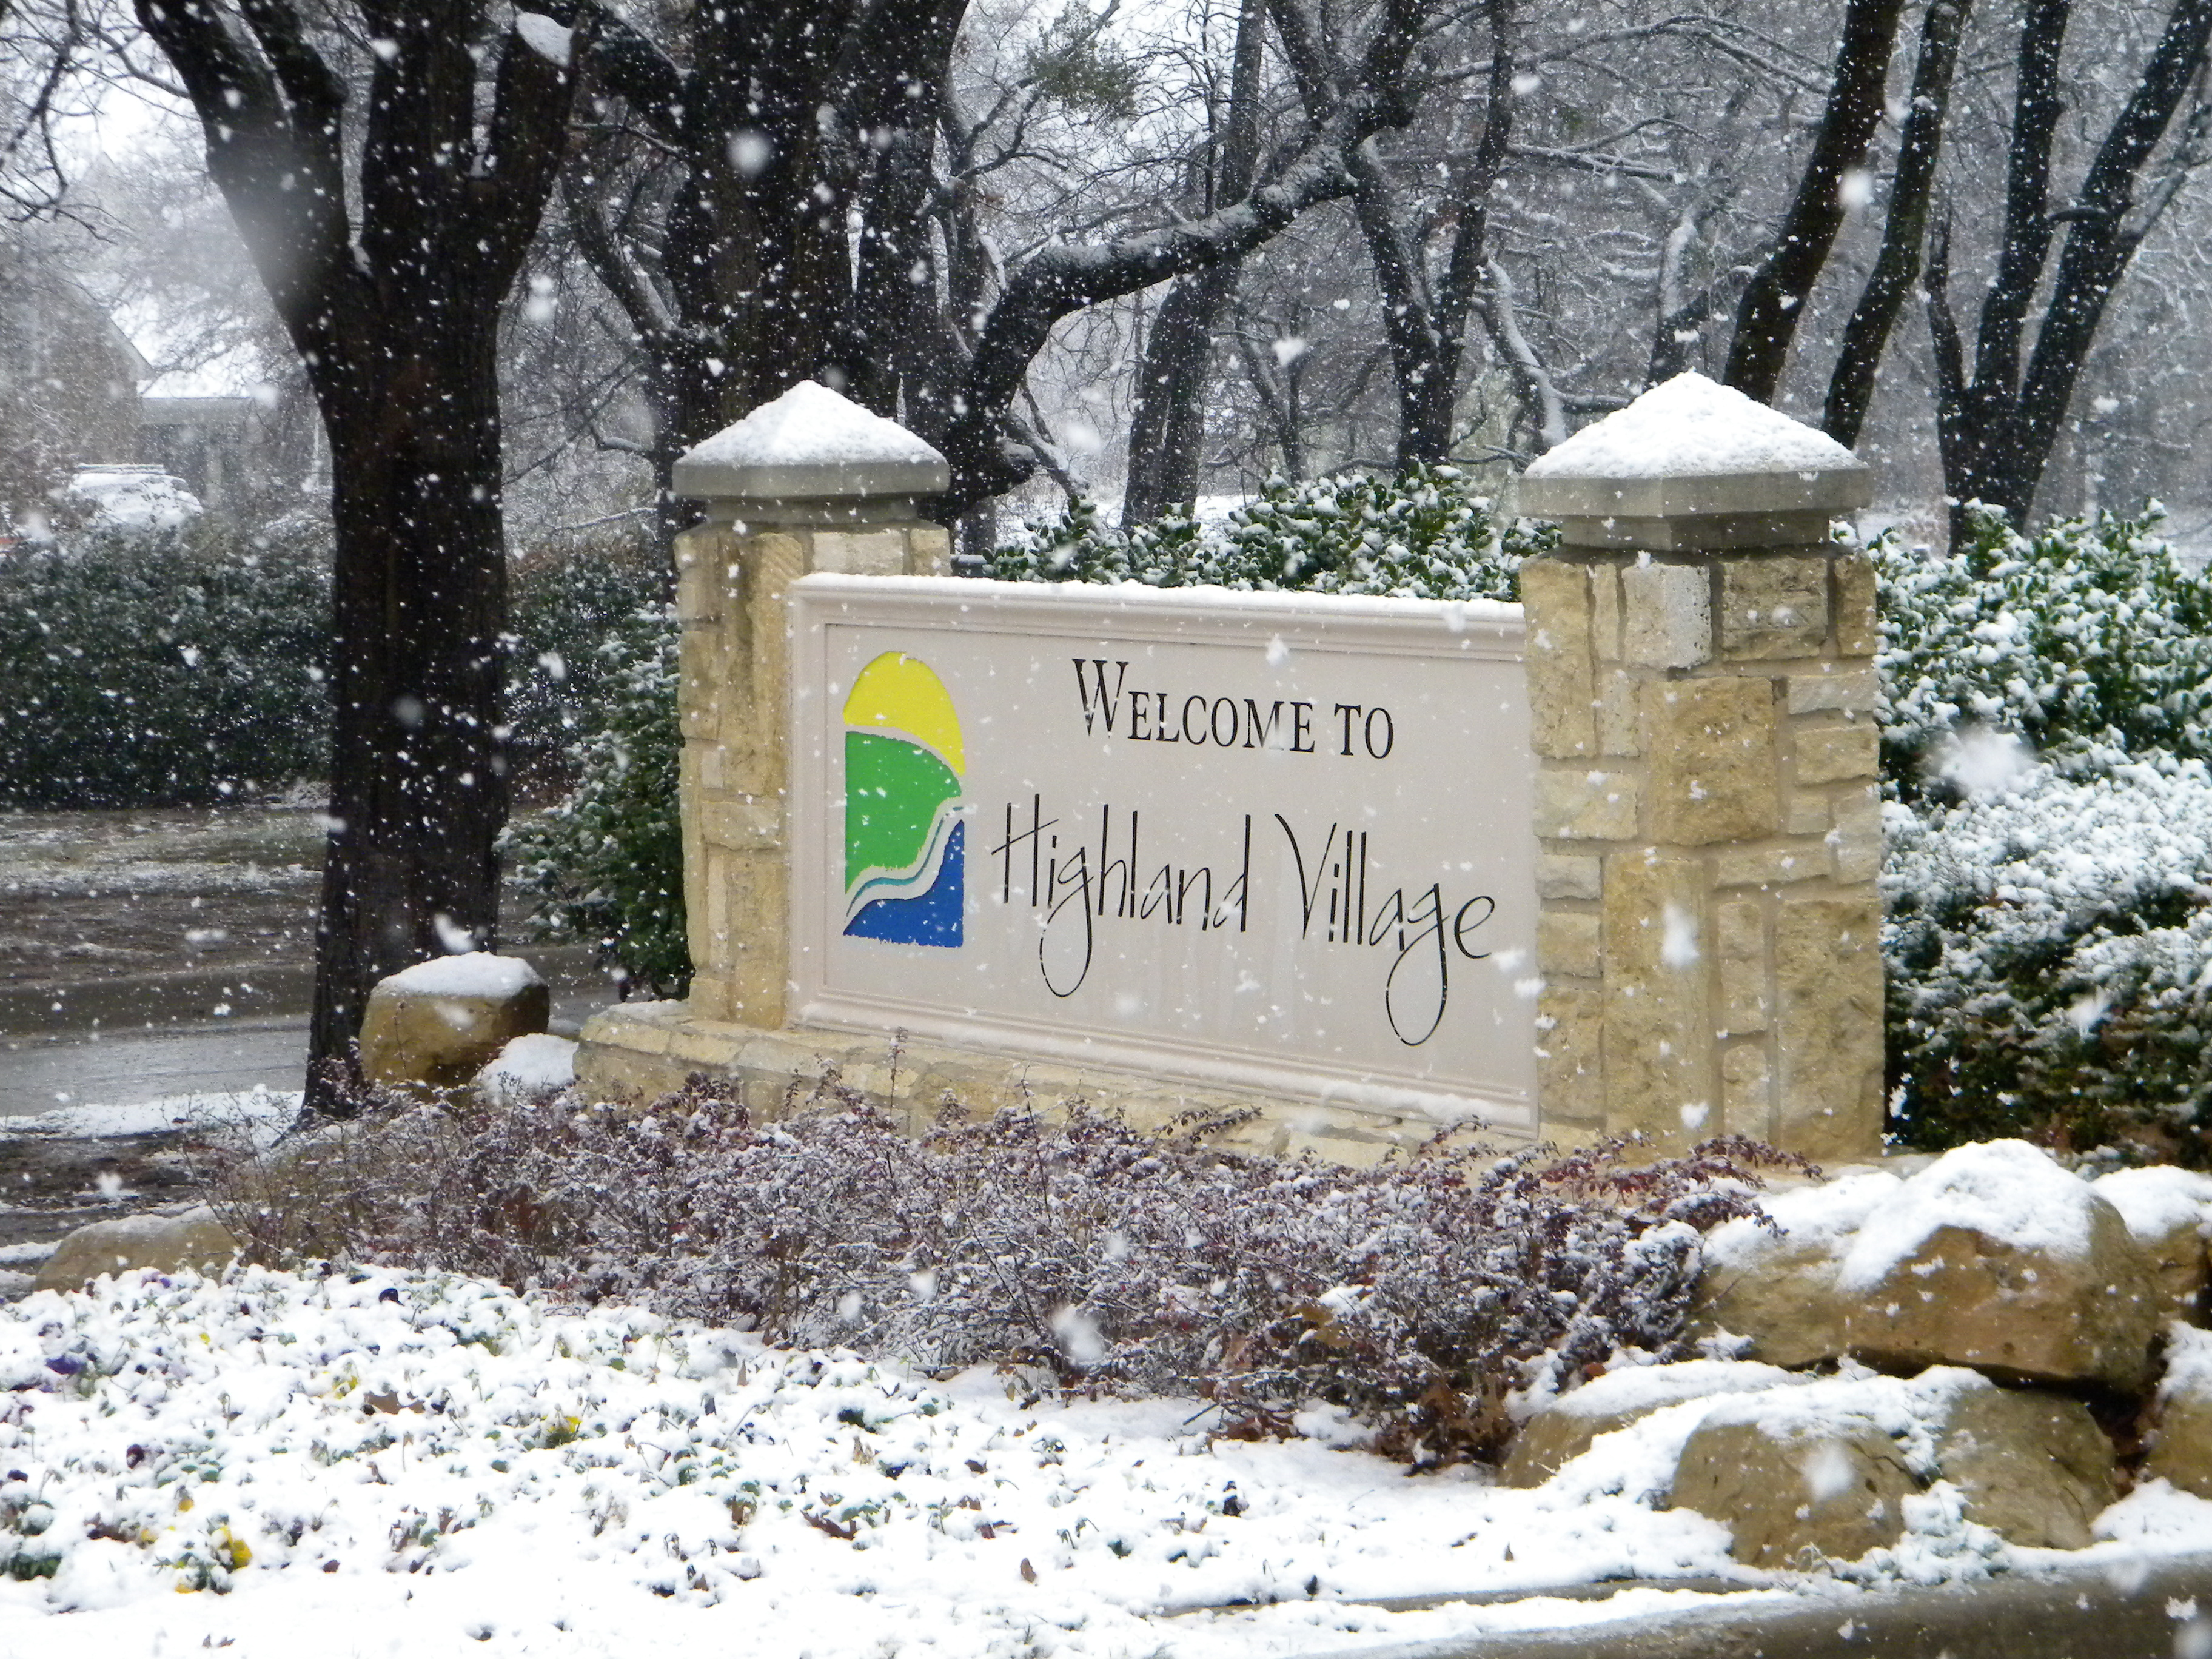 Highland Village sign in the snow